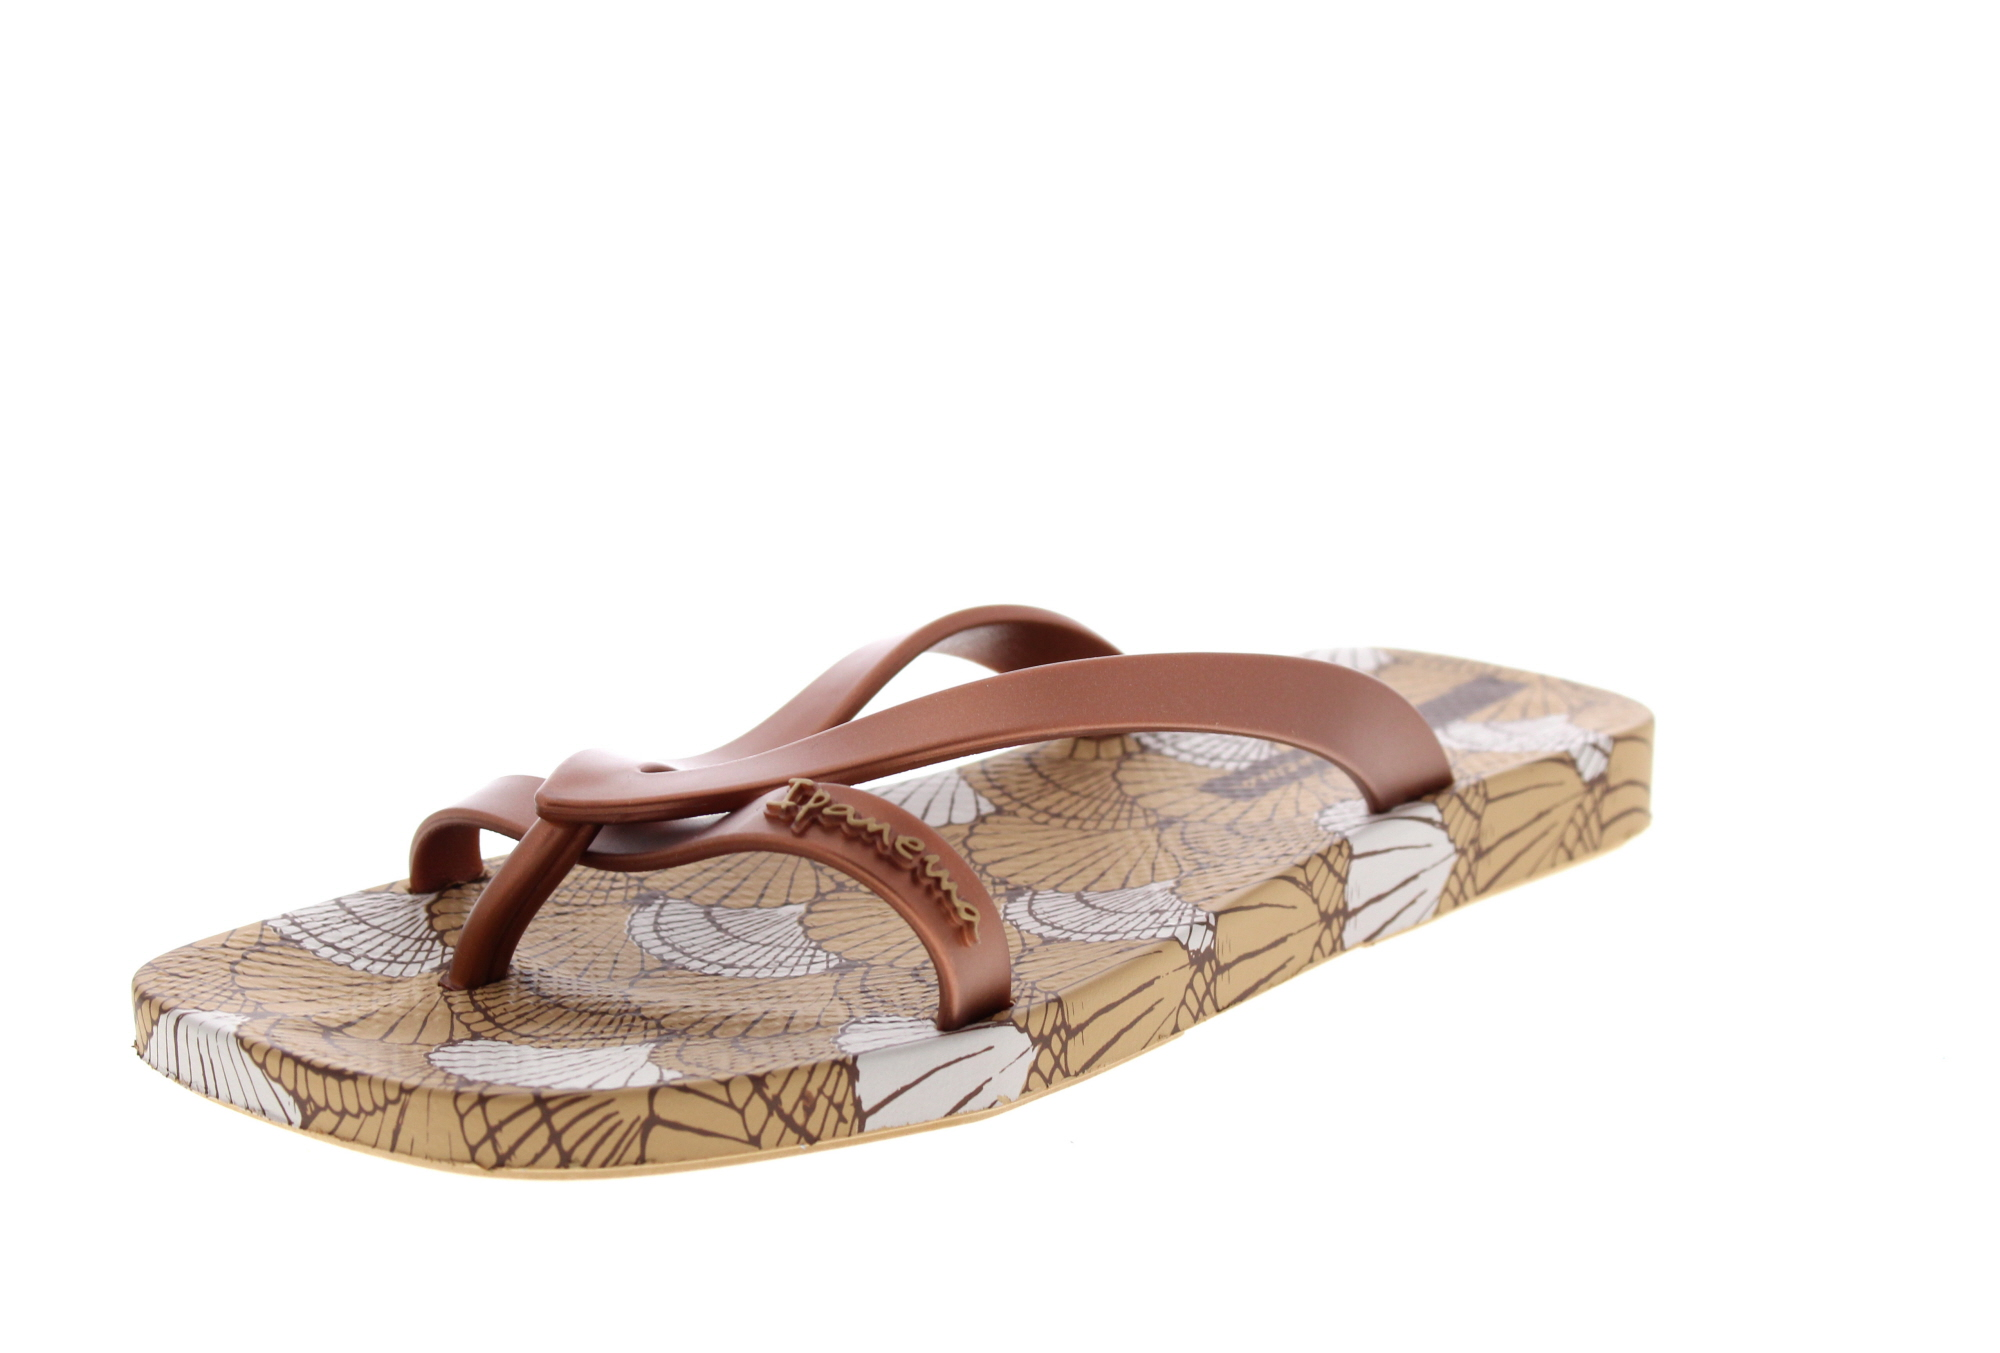 IPANEMA reduziert FASHION KIREY V 82290 - bronze brown0-6560